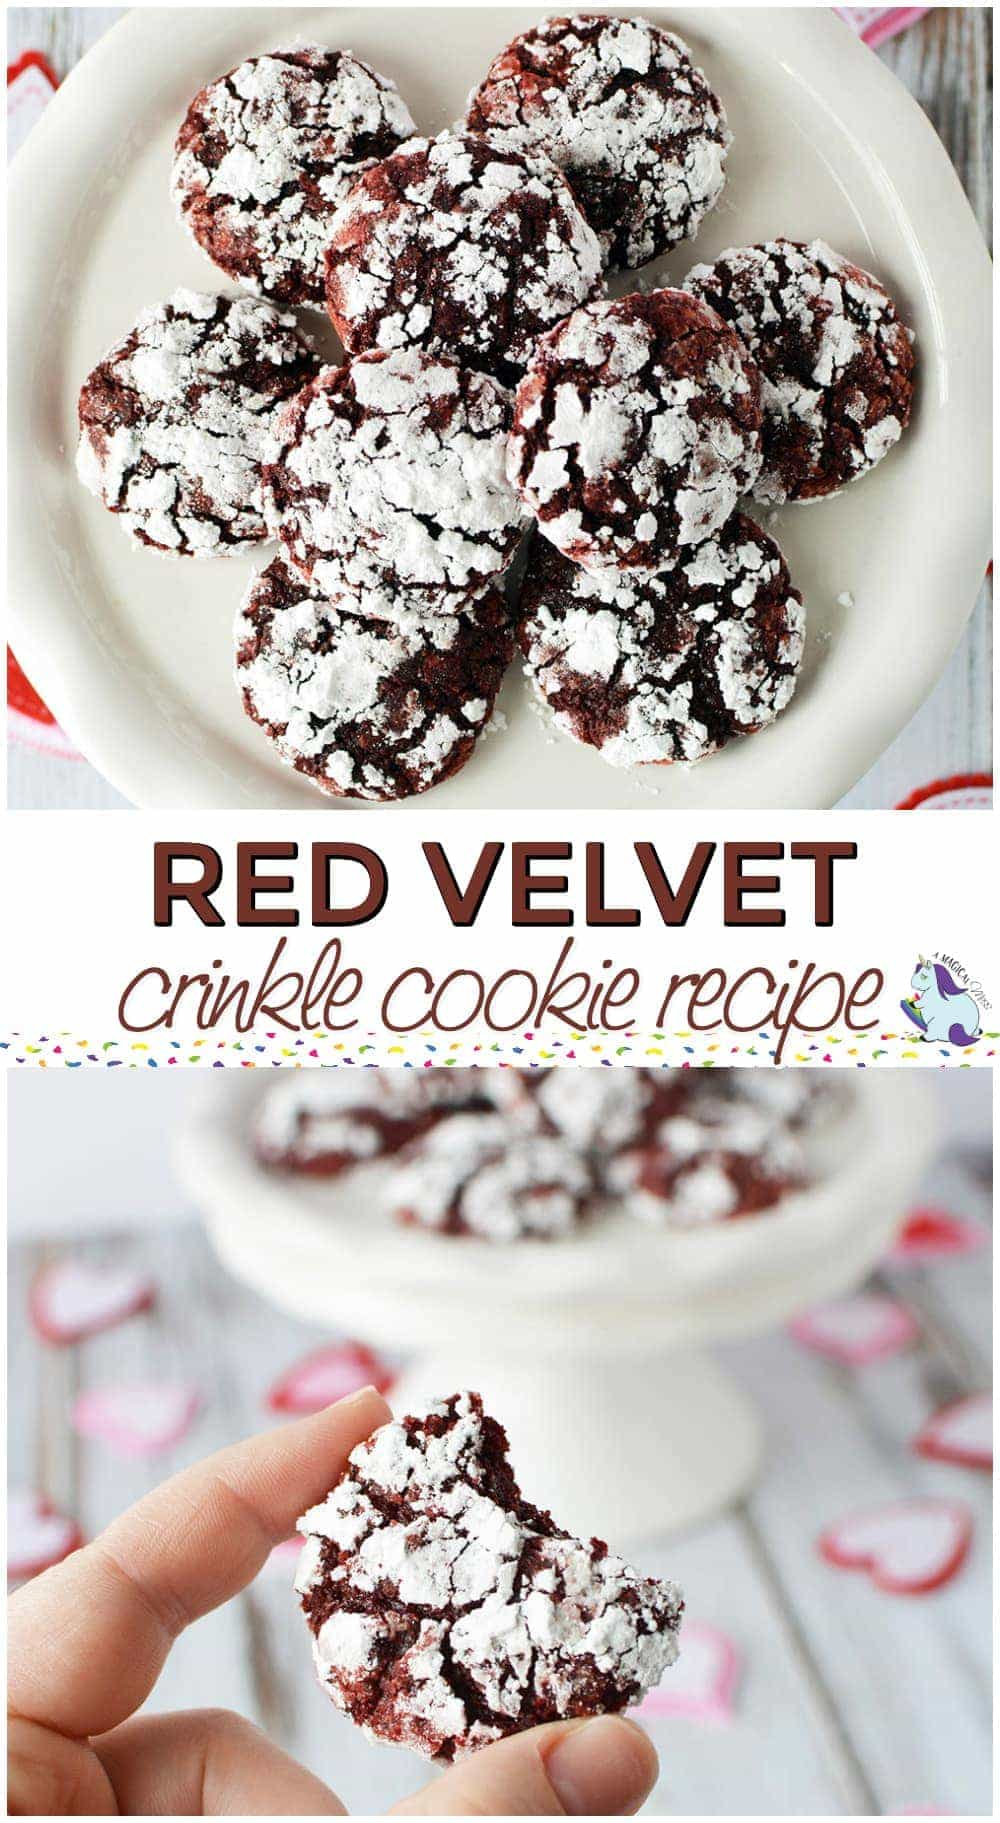 Red Velvet Crinkle Cookie Recipe - Only 4 Ingredients #valentinesday #cookies #recipes #yum #dessert #baking #redvelvet